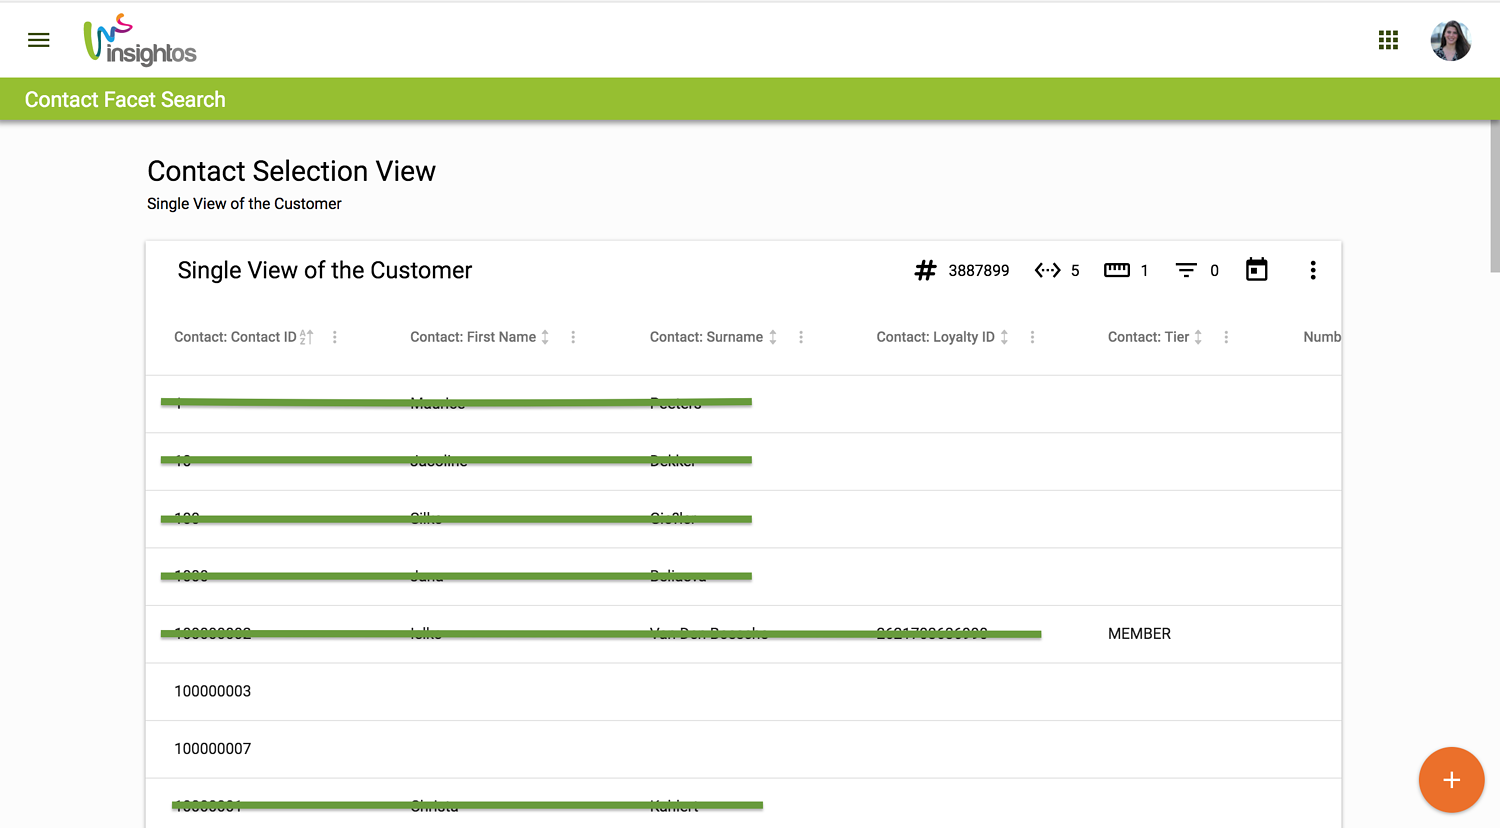 Customer Viewer - Facet Search